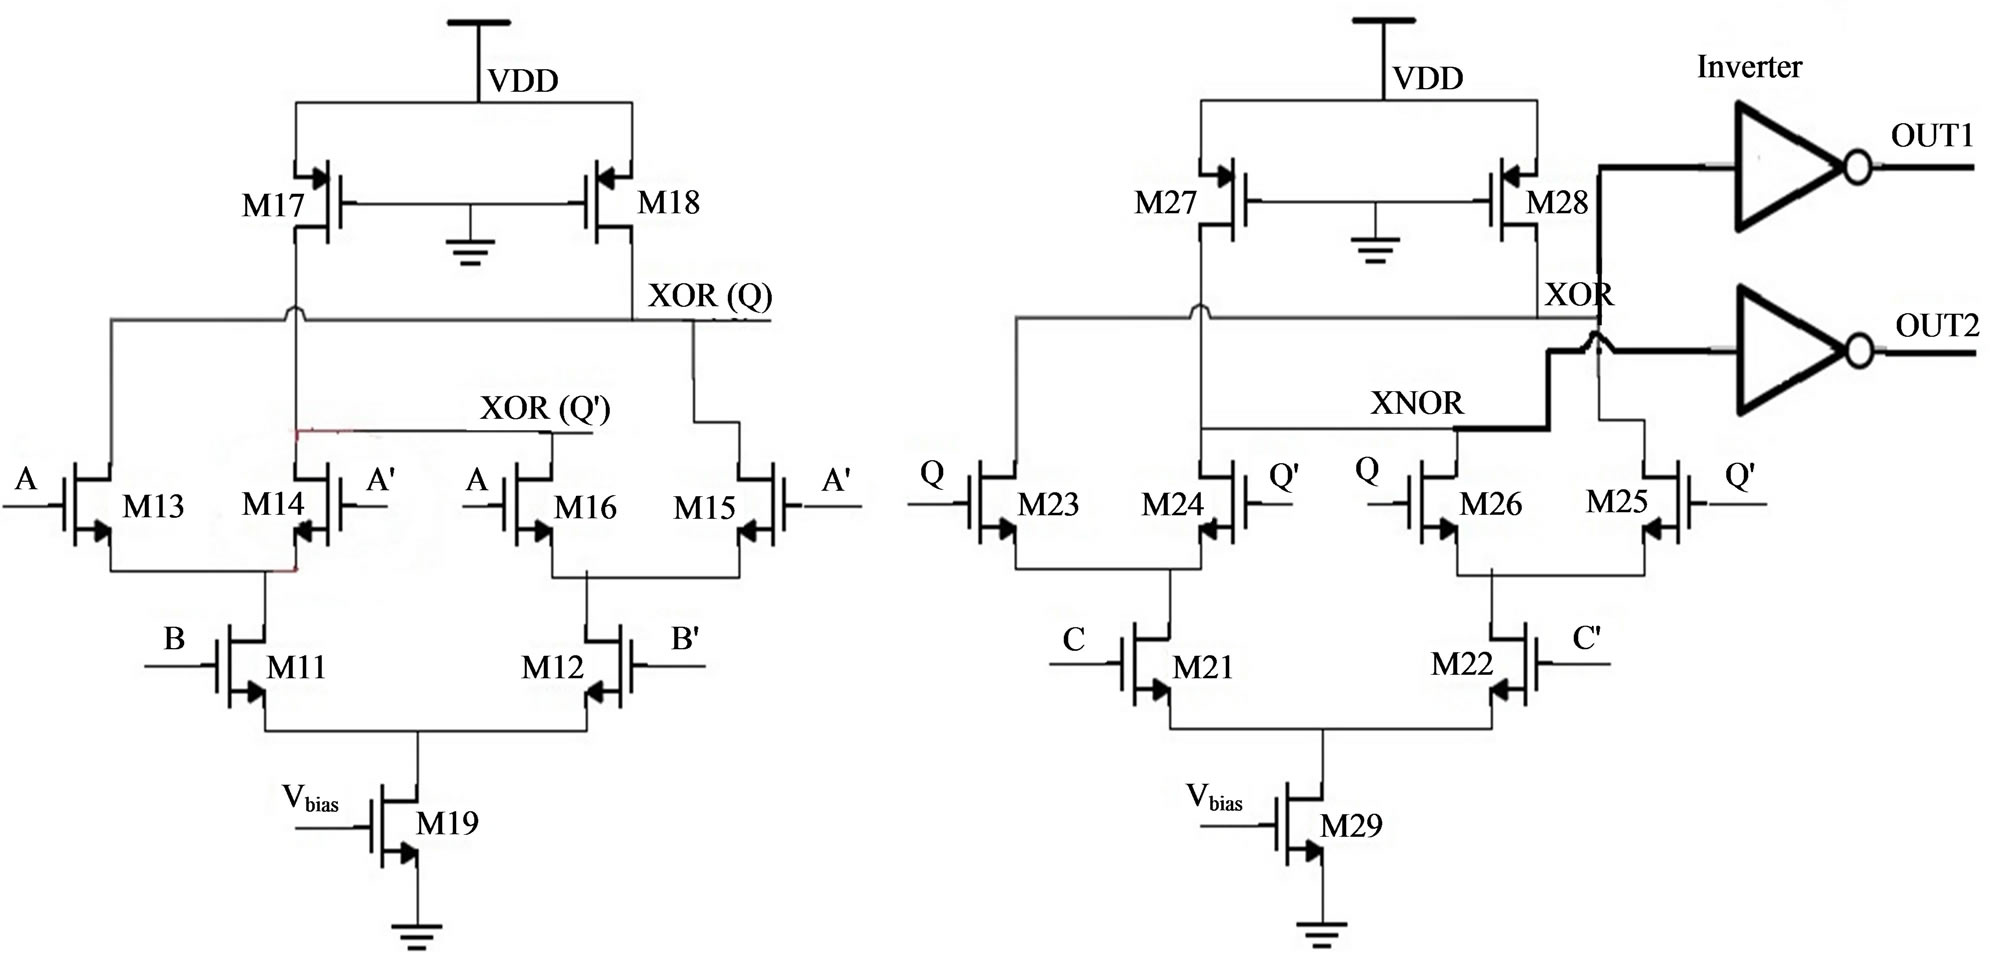 Current Mode Logic Testing Of Xor Xnor Circuit A Case Study Transistor Source